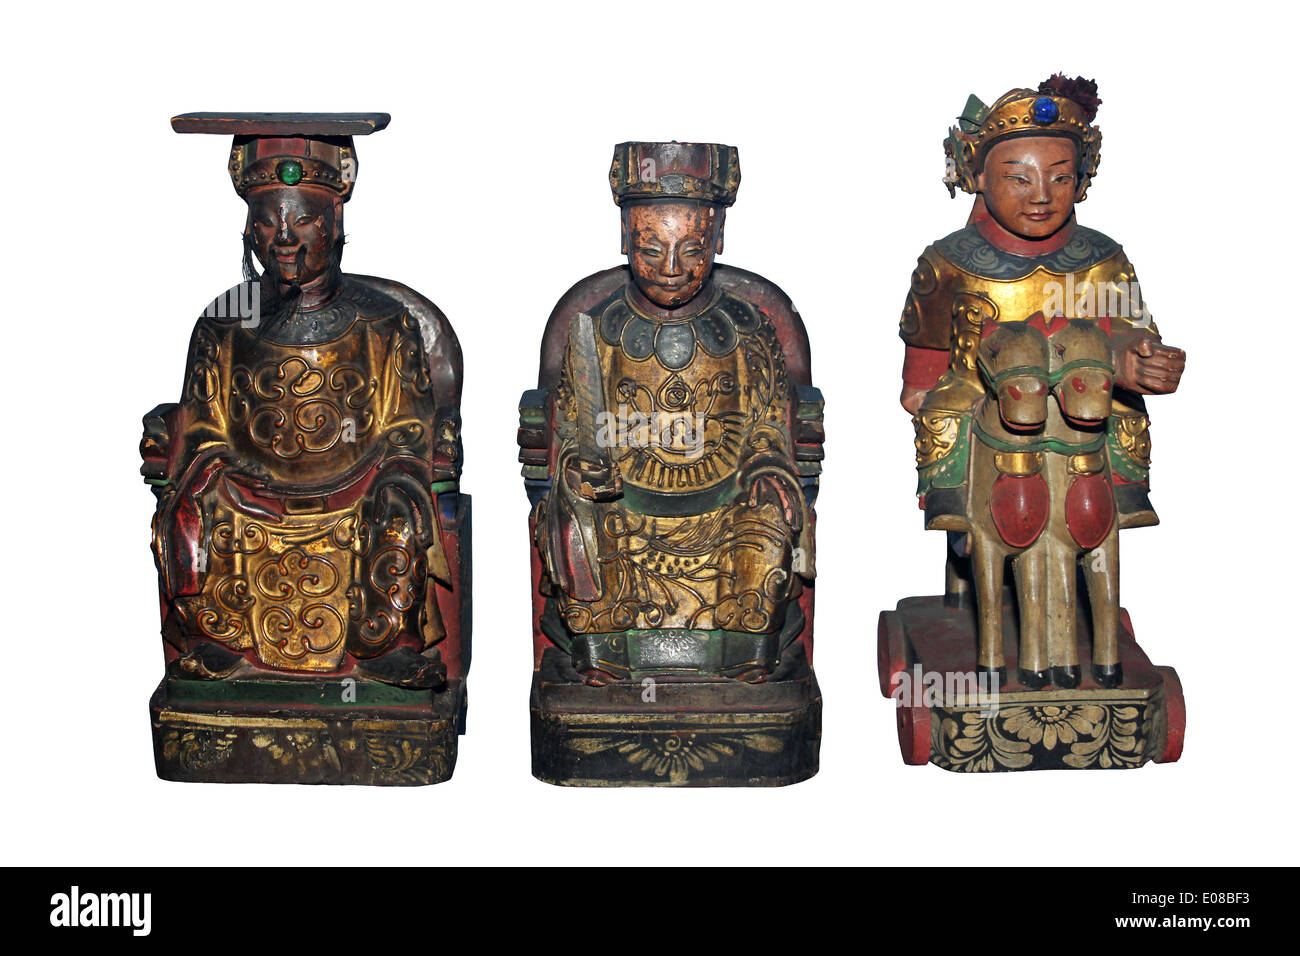 Chinese Figures Of The Jade Emperor, A Deity and The Queen Of Heaven Stock Photo